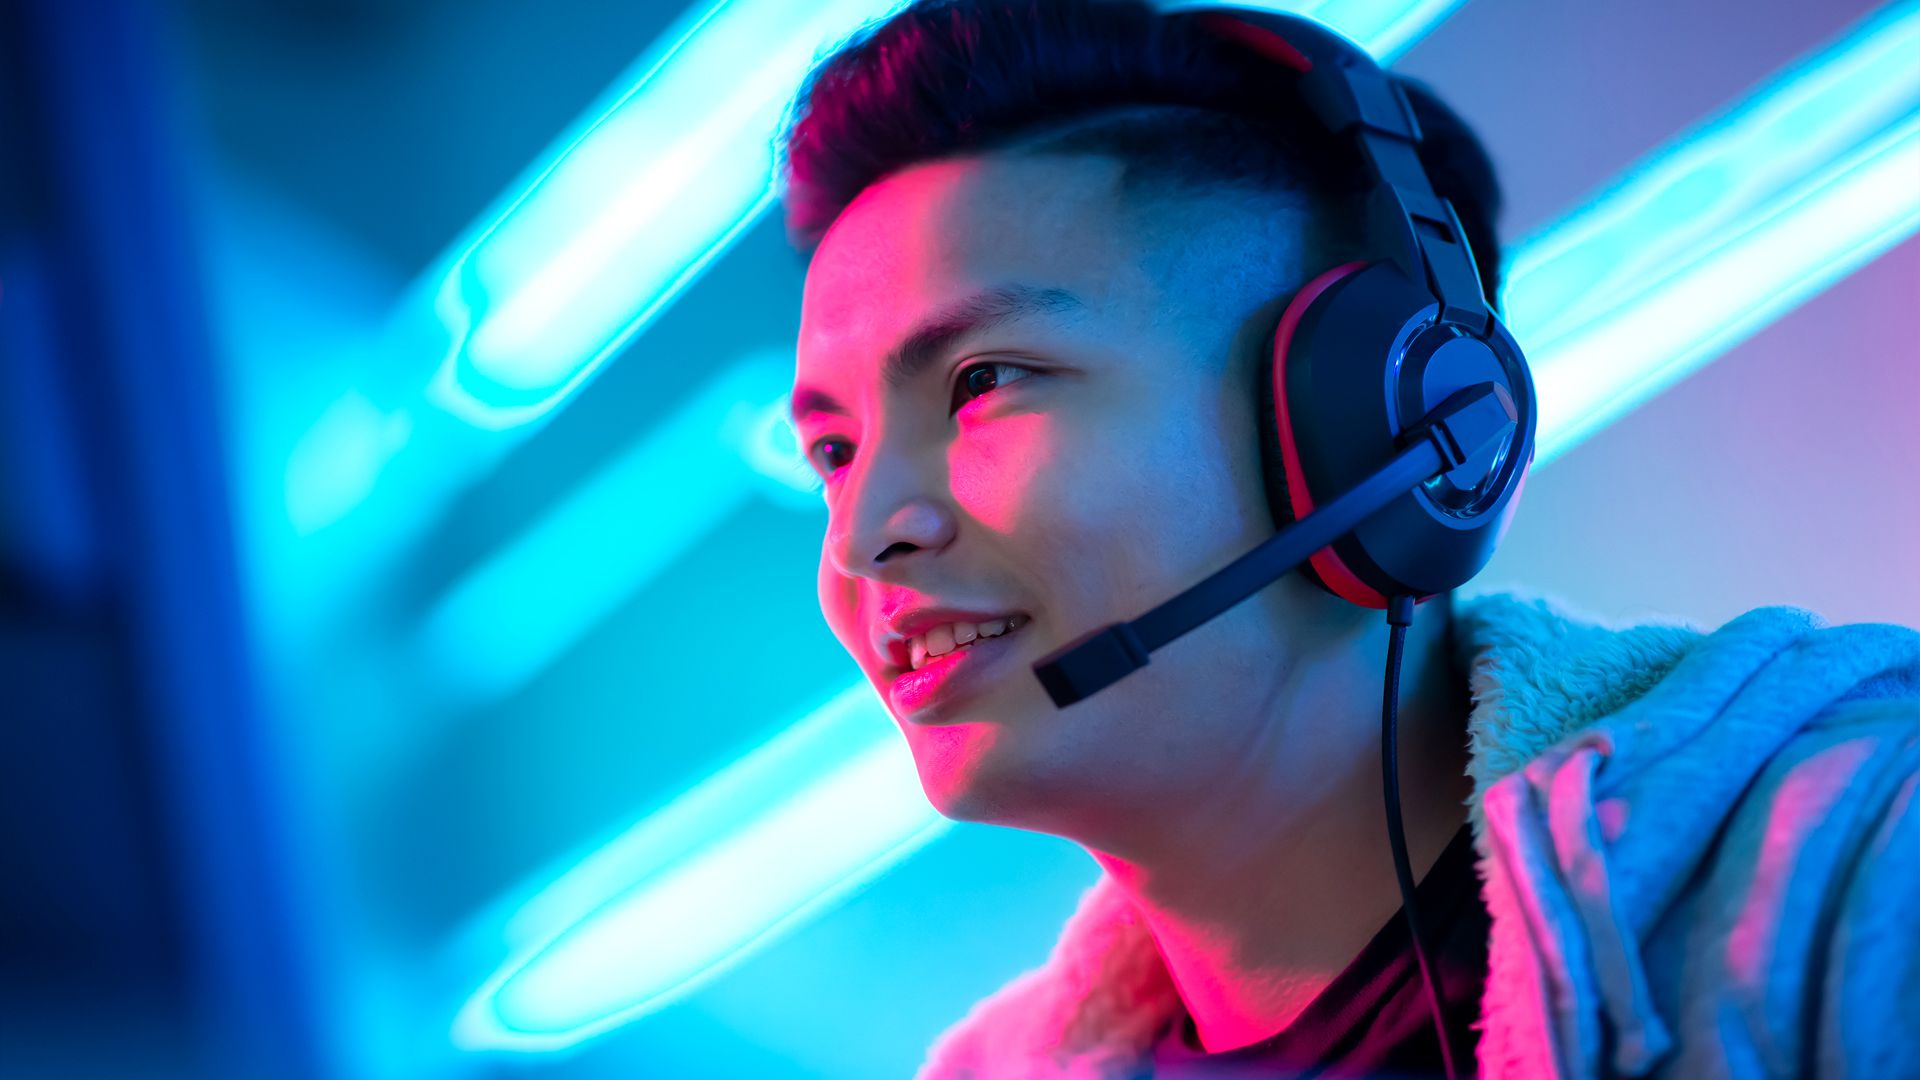 A young man playing a video game while wearing a headset with a microphone and headphones.